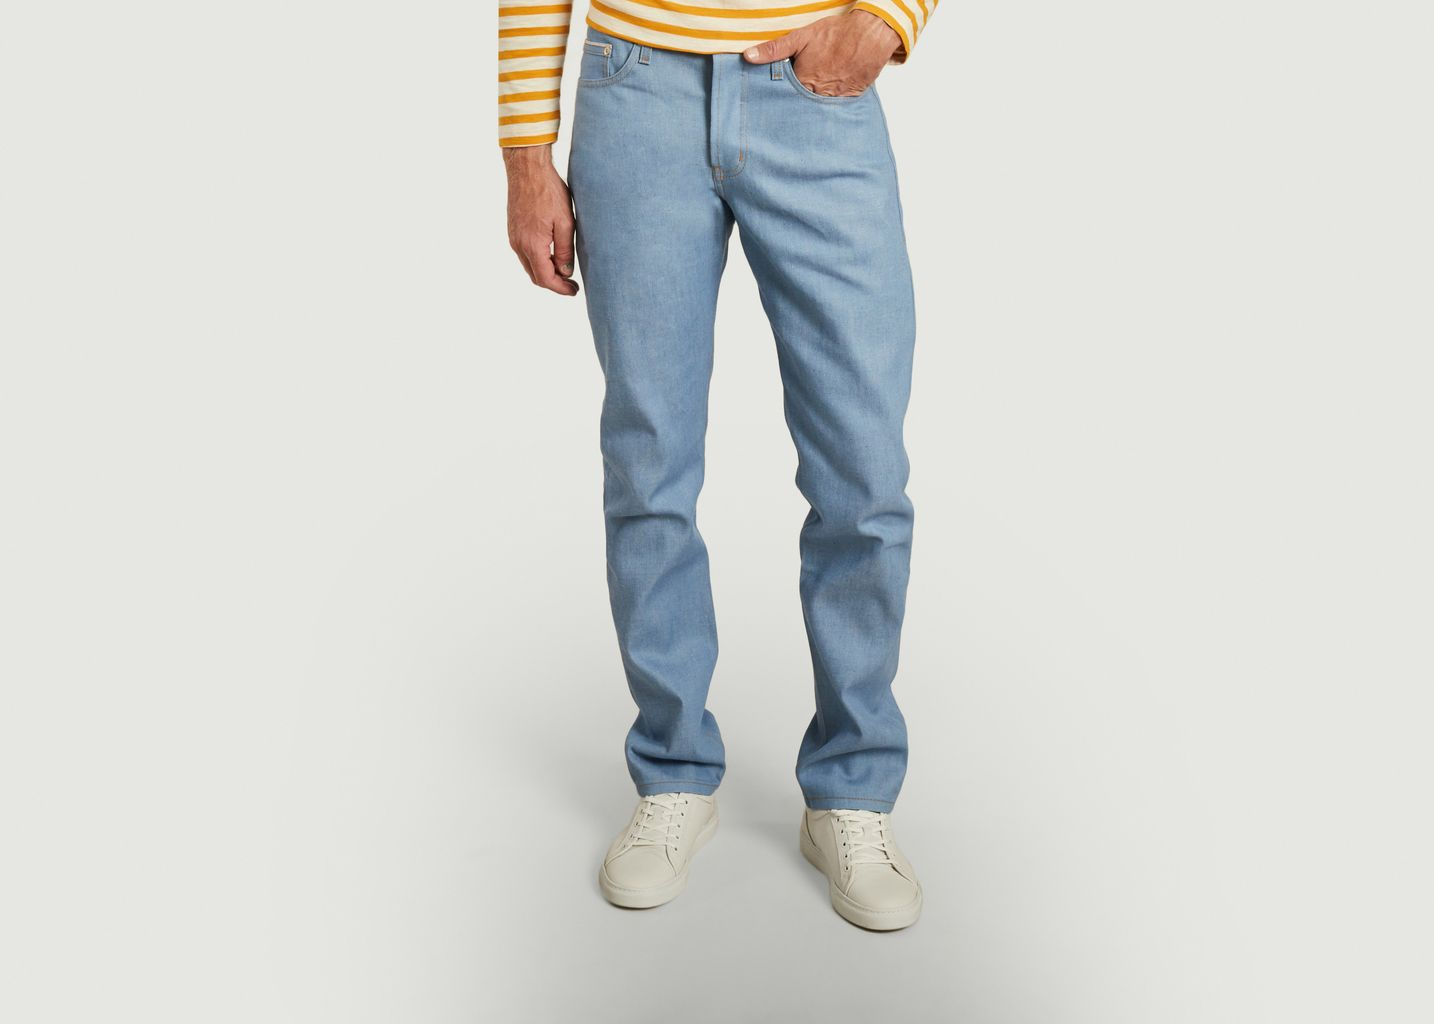 Jean Weird Guy Summer Sky Selvedge - Naked and Famous